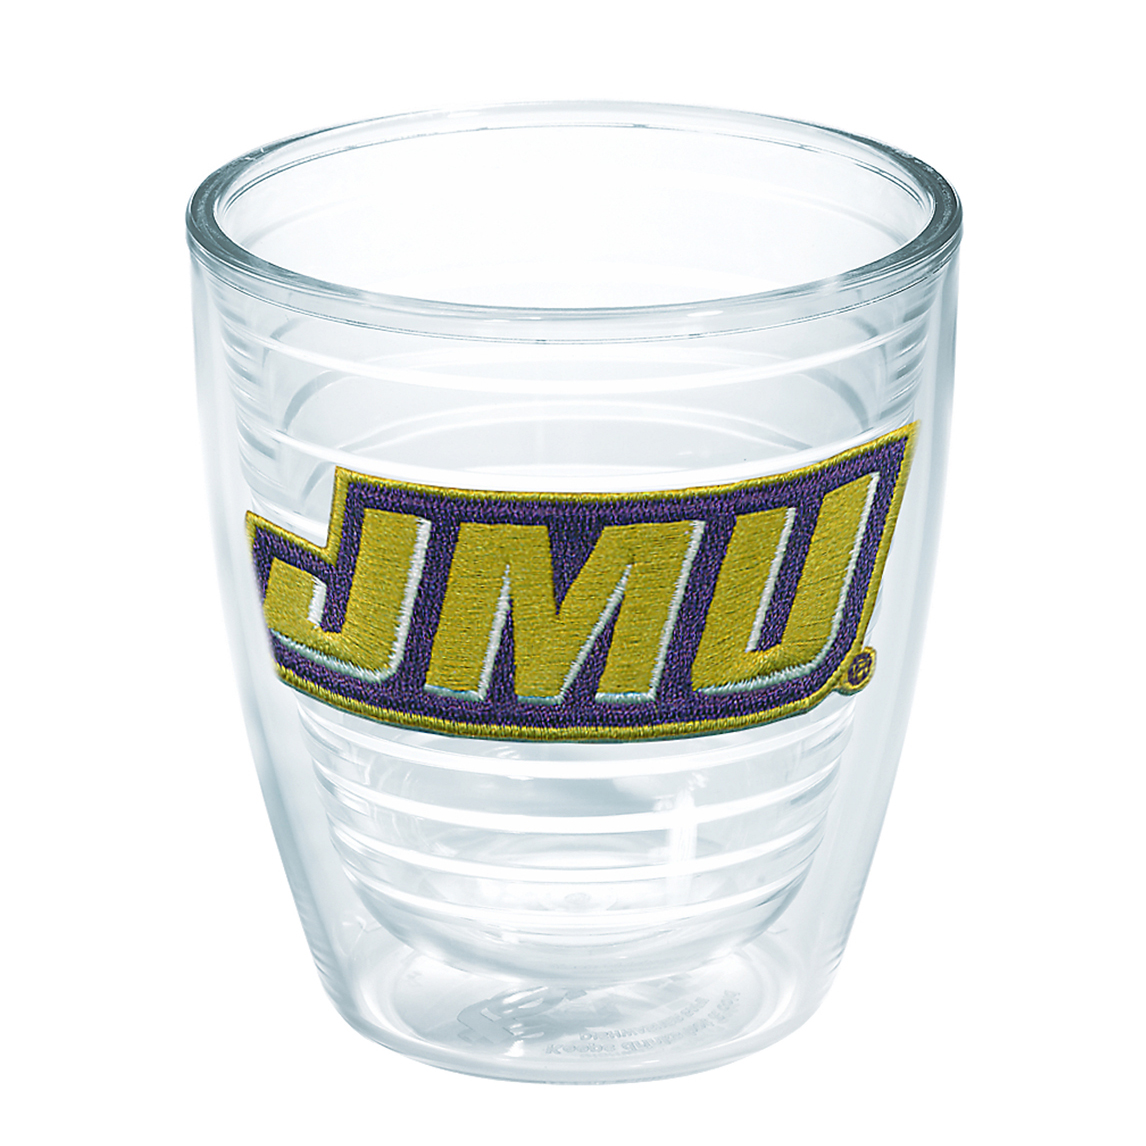 James Madison 12 oz. Tervis Tumblers - Set of 4